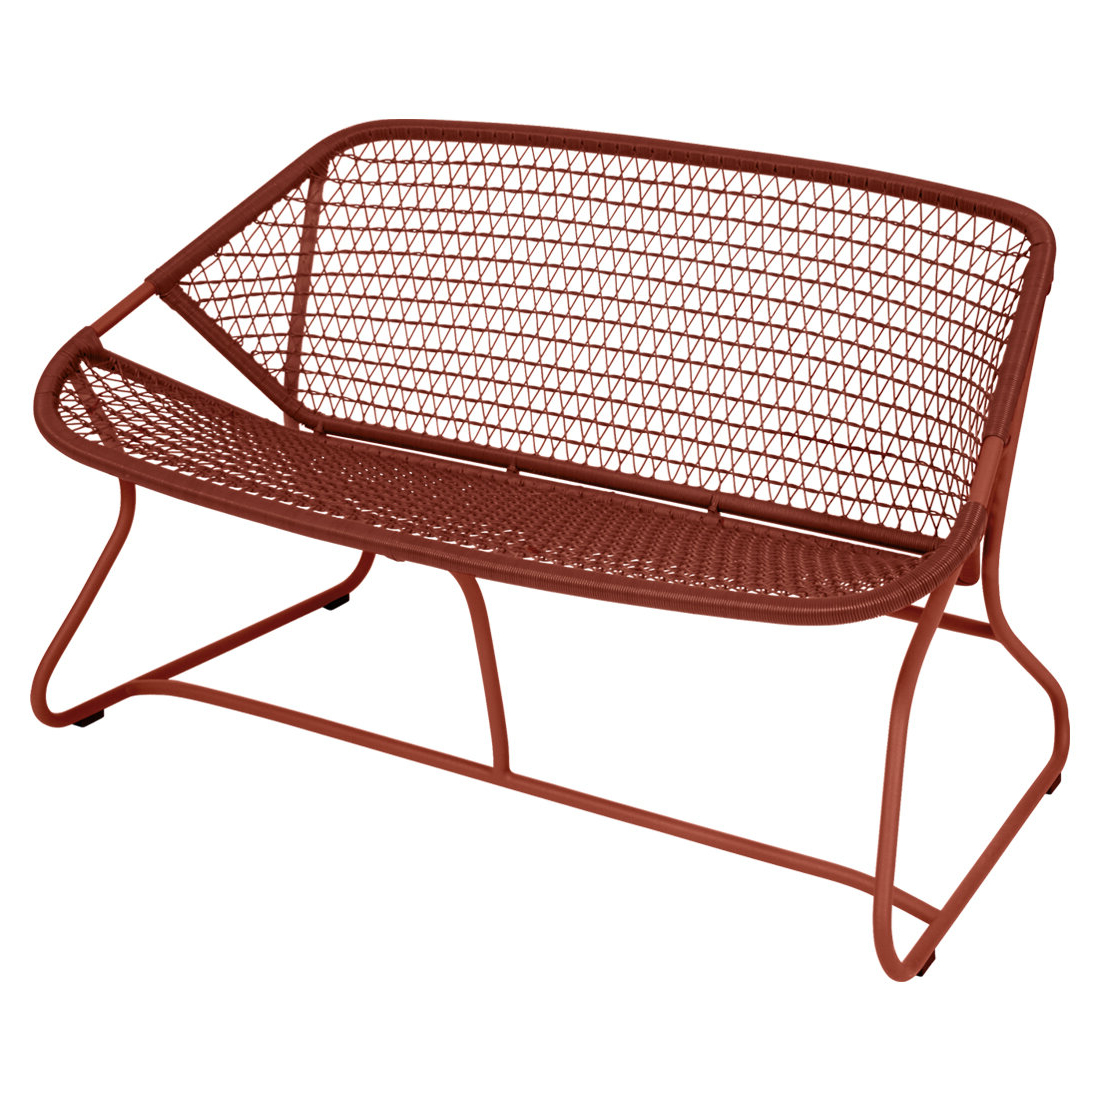 Sixties Metal Garden Bench With Preferred Gehlert Traditional Patio Iron Garden Benches (View 9 of 30)